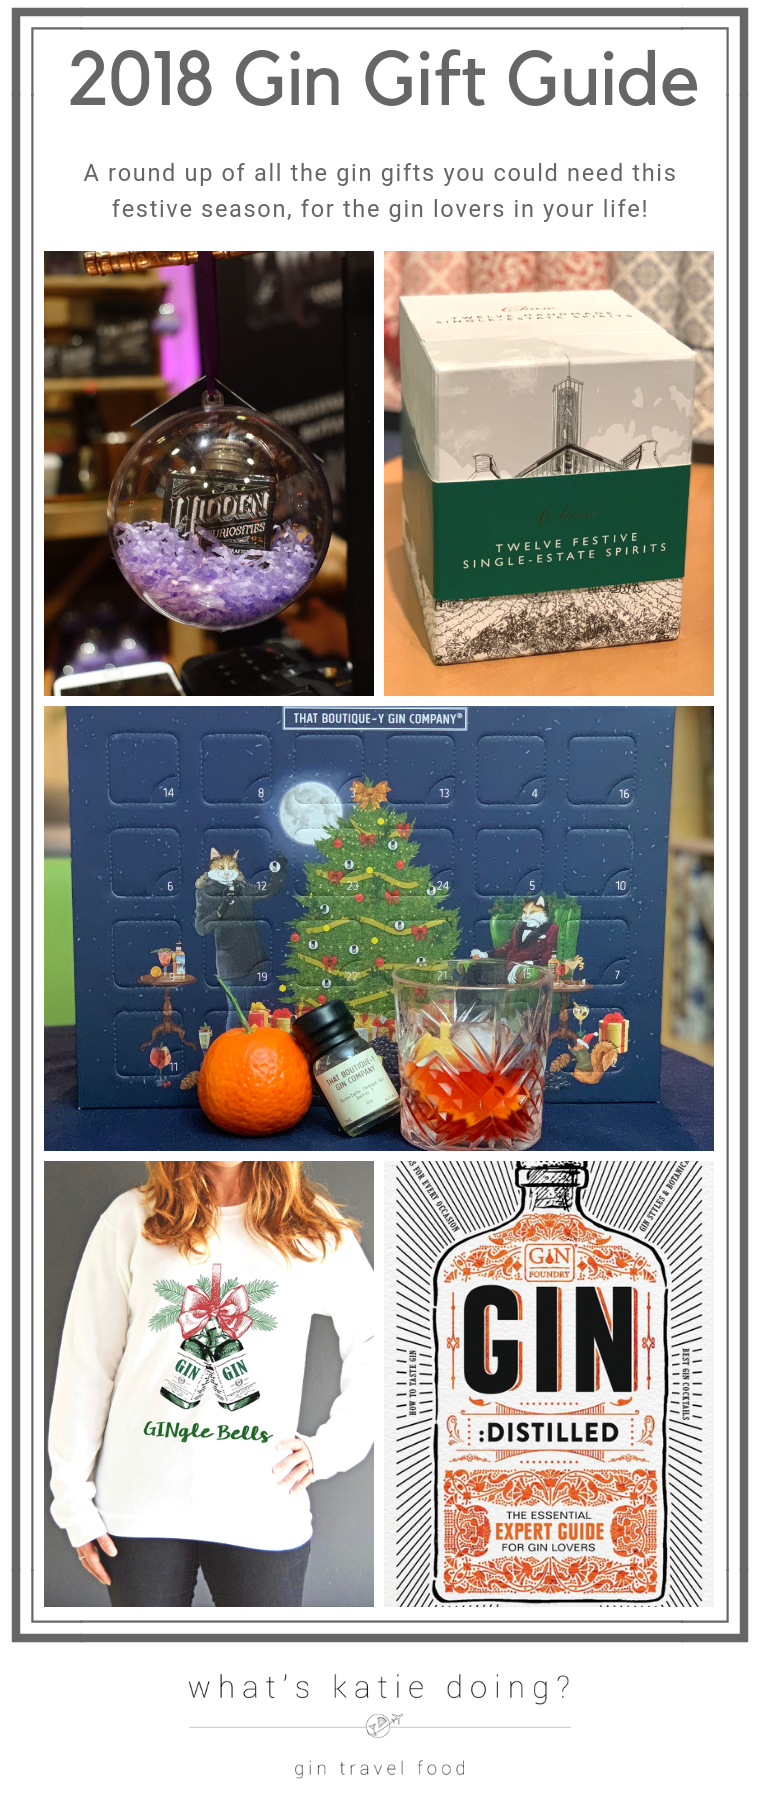 2018 Gin Gift Guide on What's Katie Doing? blog - a complete round up of everything gin!